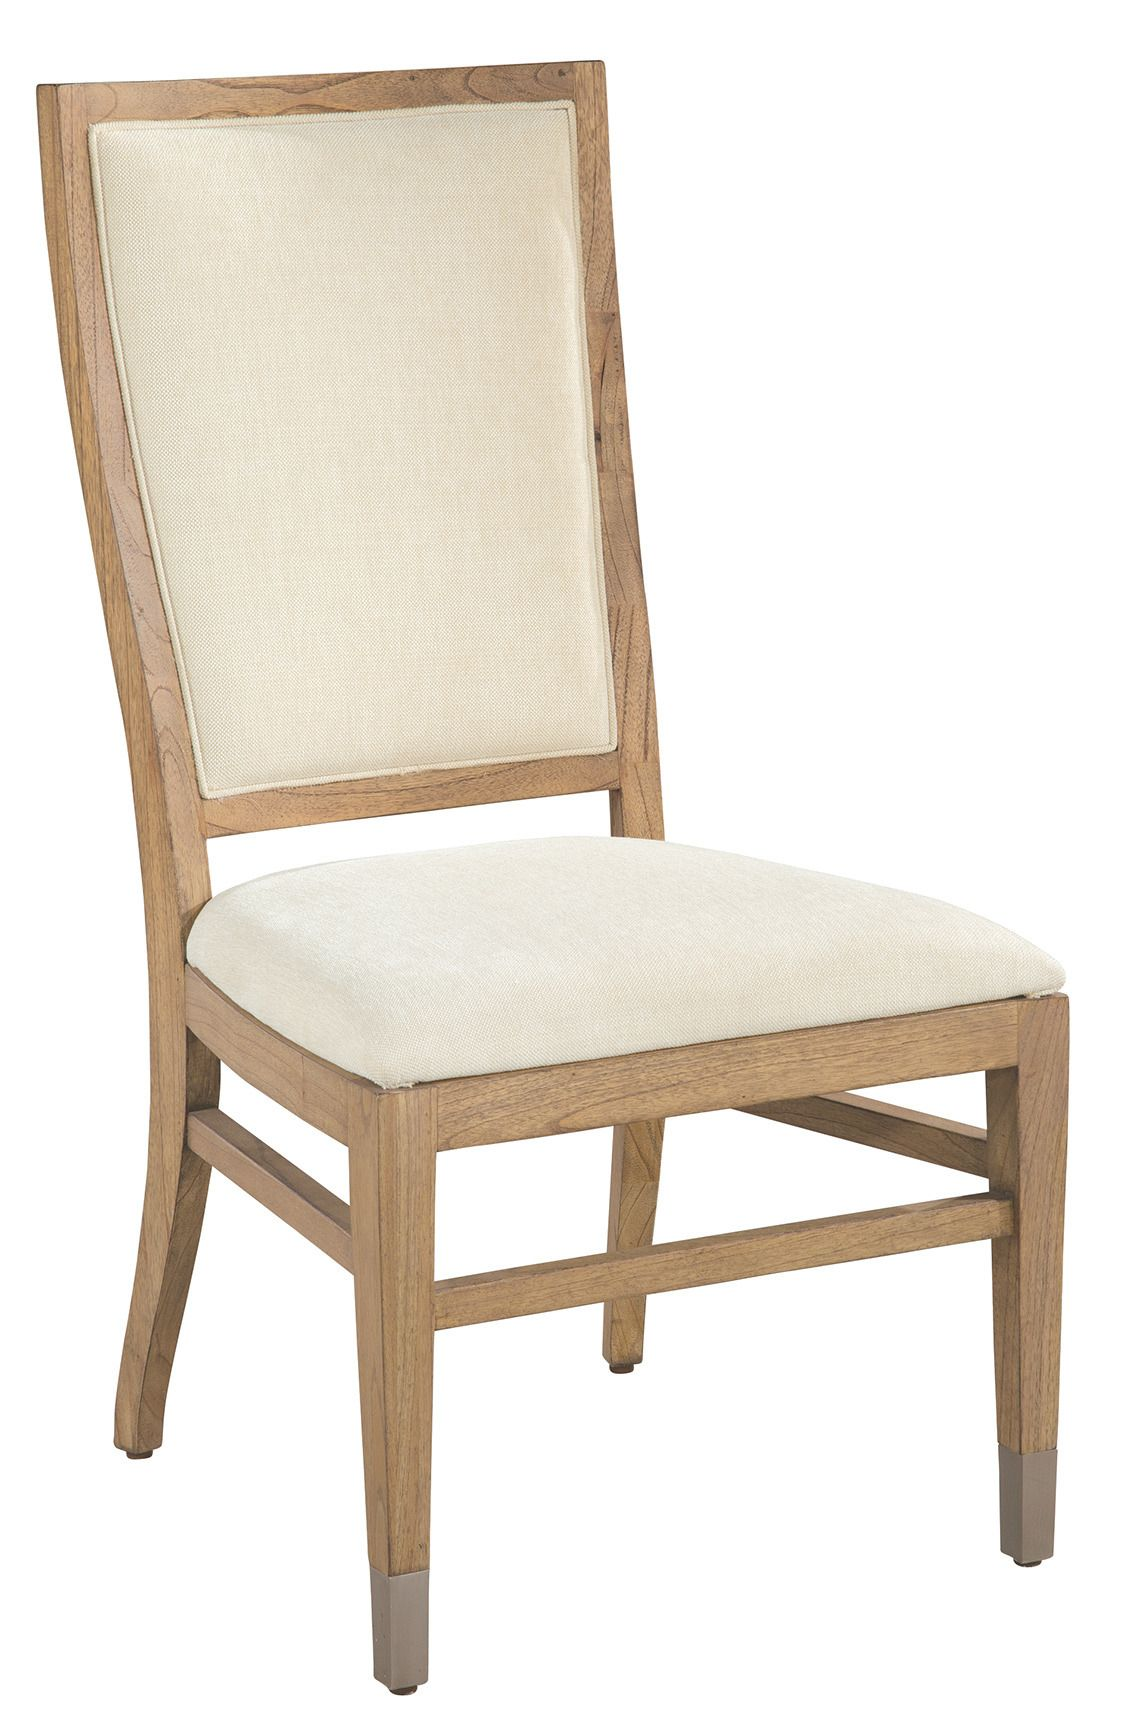 Avery Park Upholstered Dining Side Chair Hekman Home